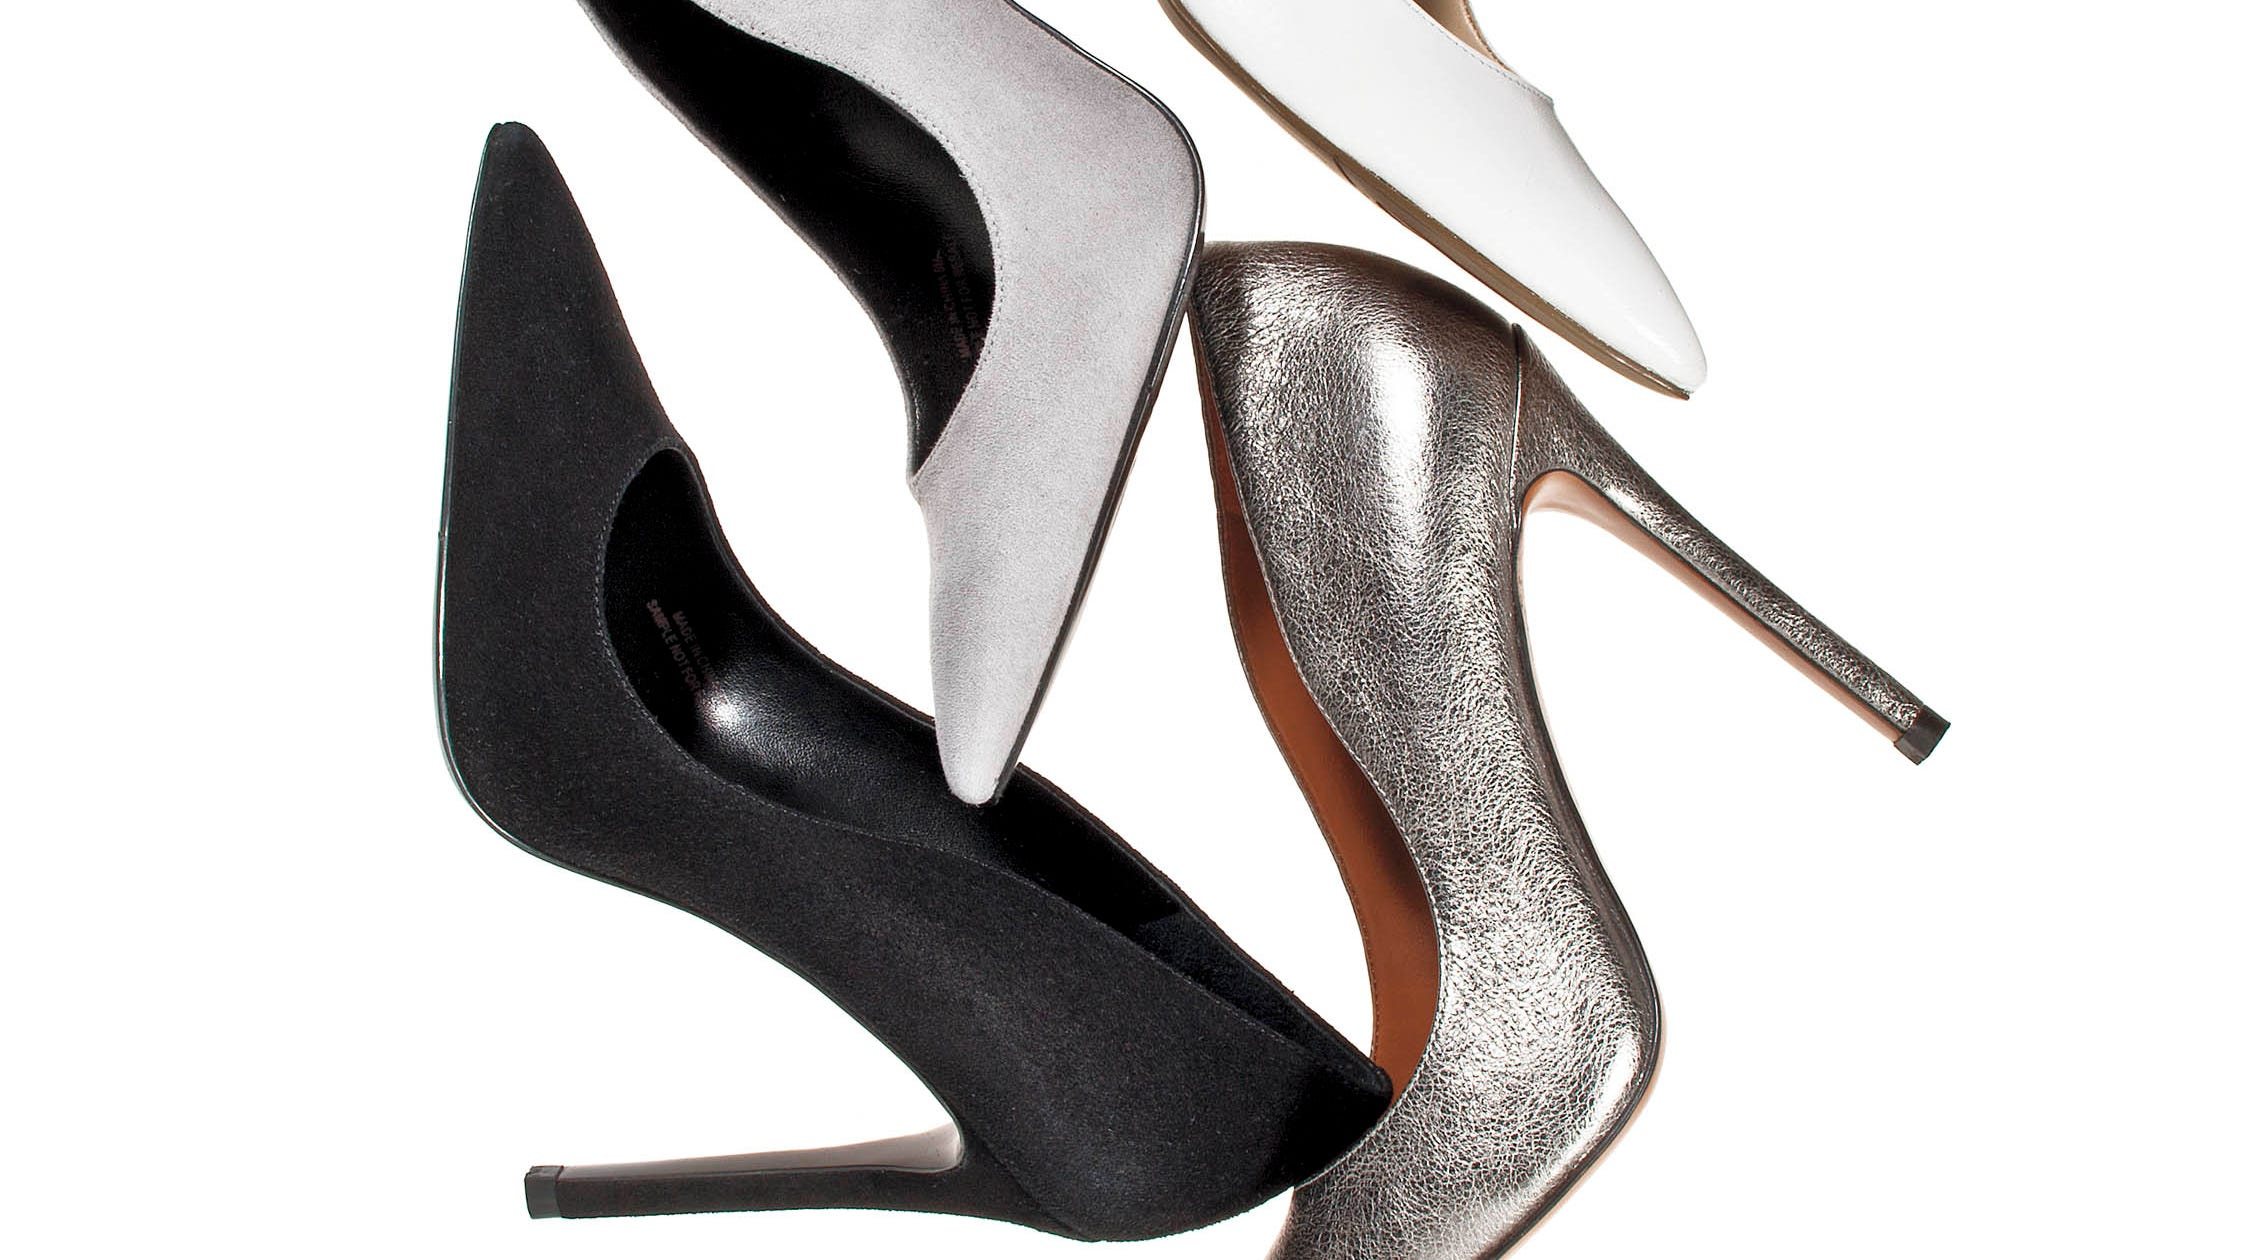 'InStyle' and Nine West have always had love for each other. Now, with their 10-design shoe collection launching today, they're literal sole-mates. 'It's the complete trend story for fall,' says 'InStyle' editor in chief Ariel Foxman.  The 4-inch-high Genial ($79) has 'just the right amount of lift for fall's new midcalf skirts,' according to the magazine. Or, use a pair to spike up boyfriend jeans.